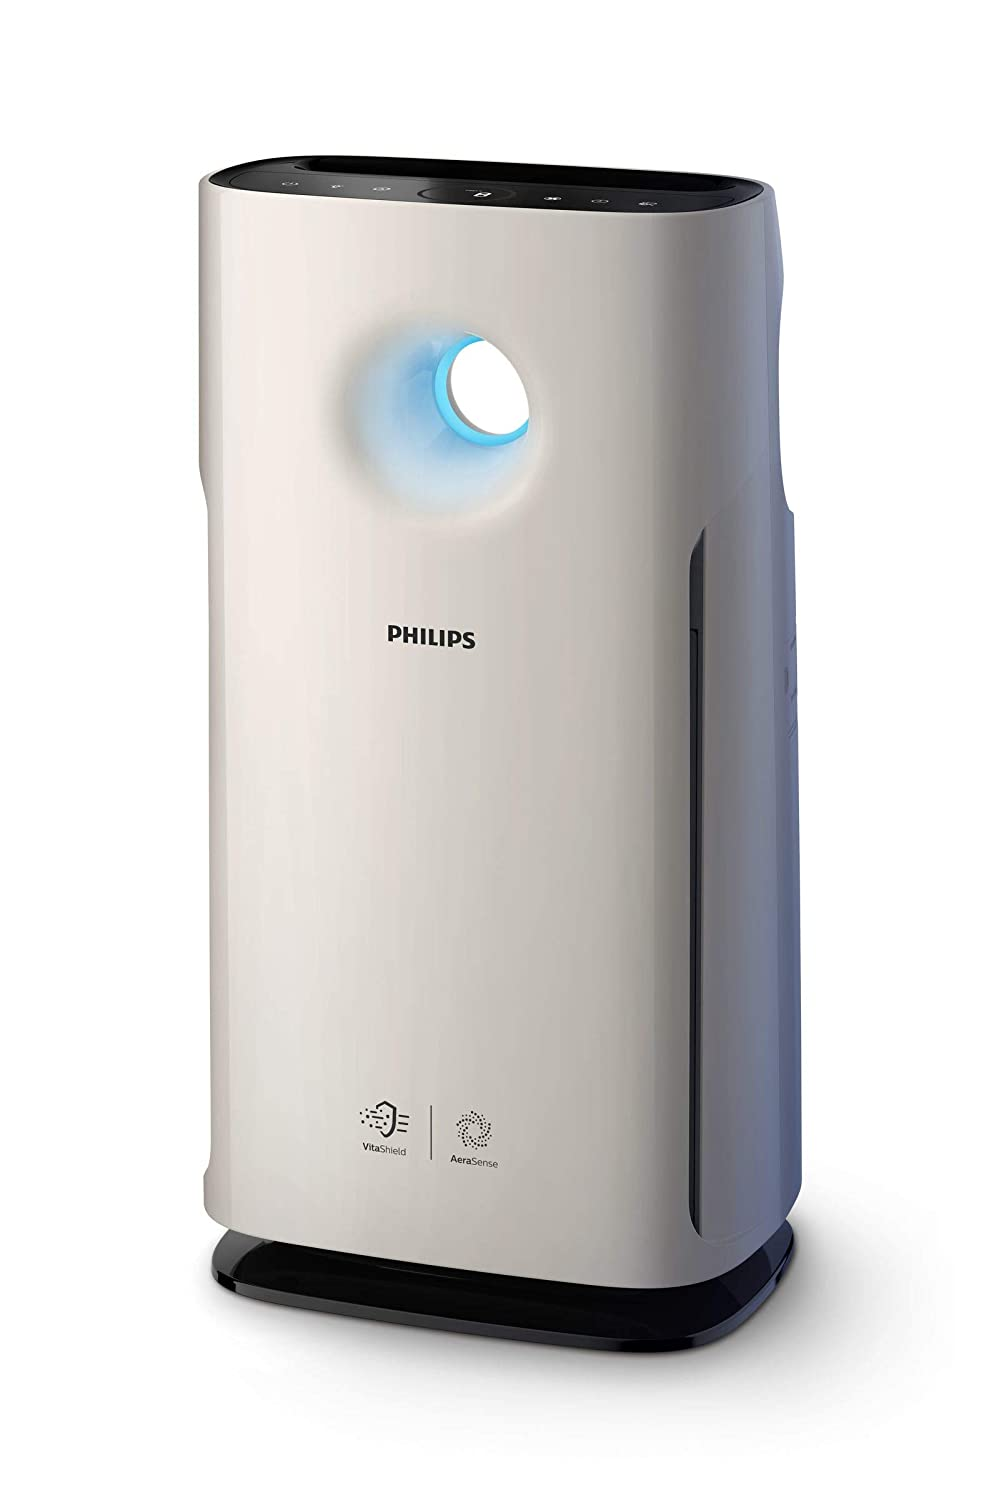 Philips AC 3257 Air purifier